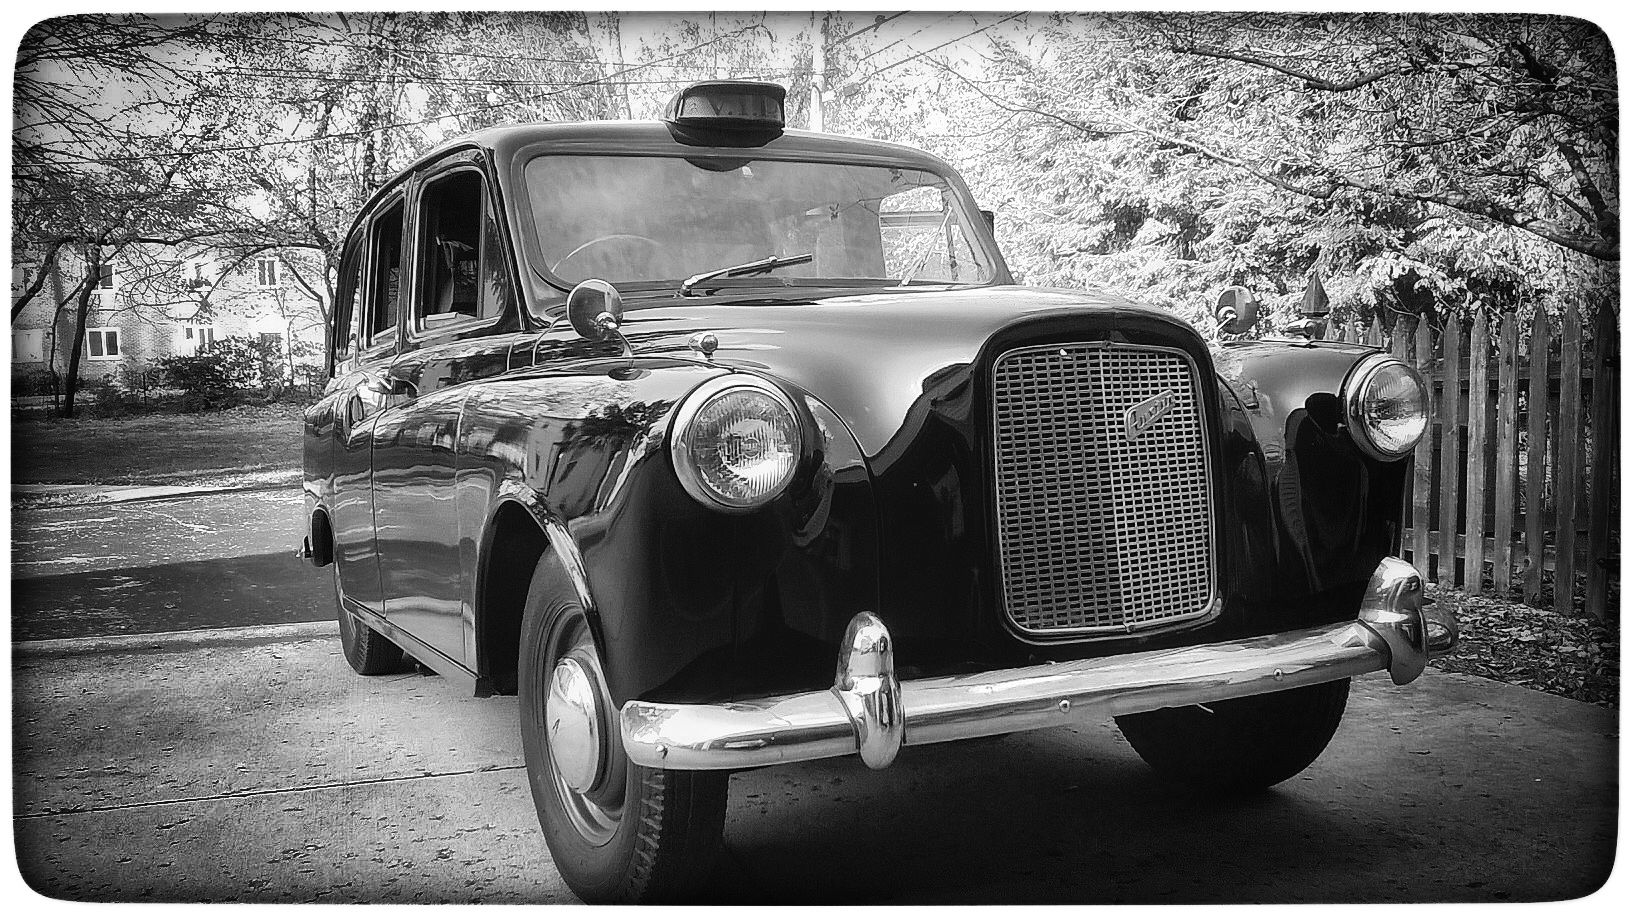 This Is My Restored 1964 Austin Fx4 London Taxi Cab It S A Right